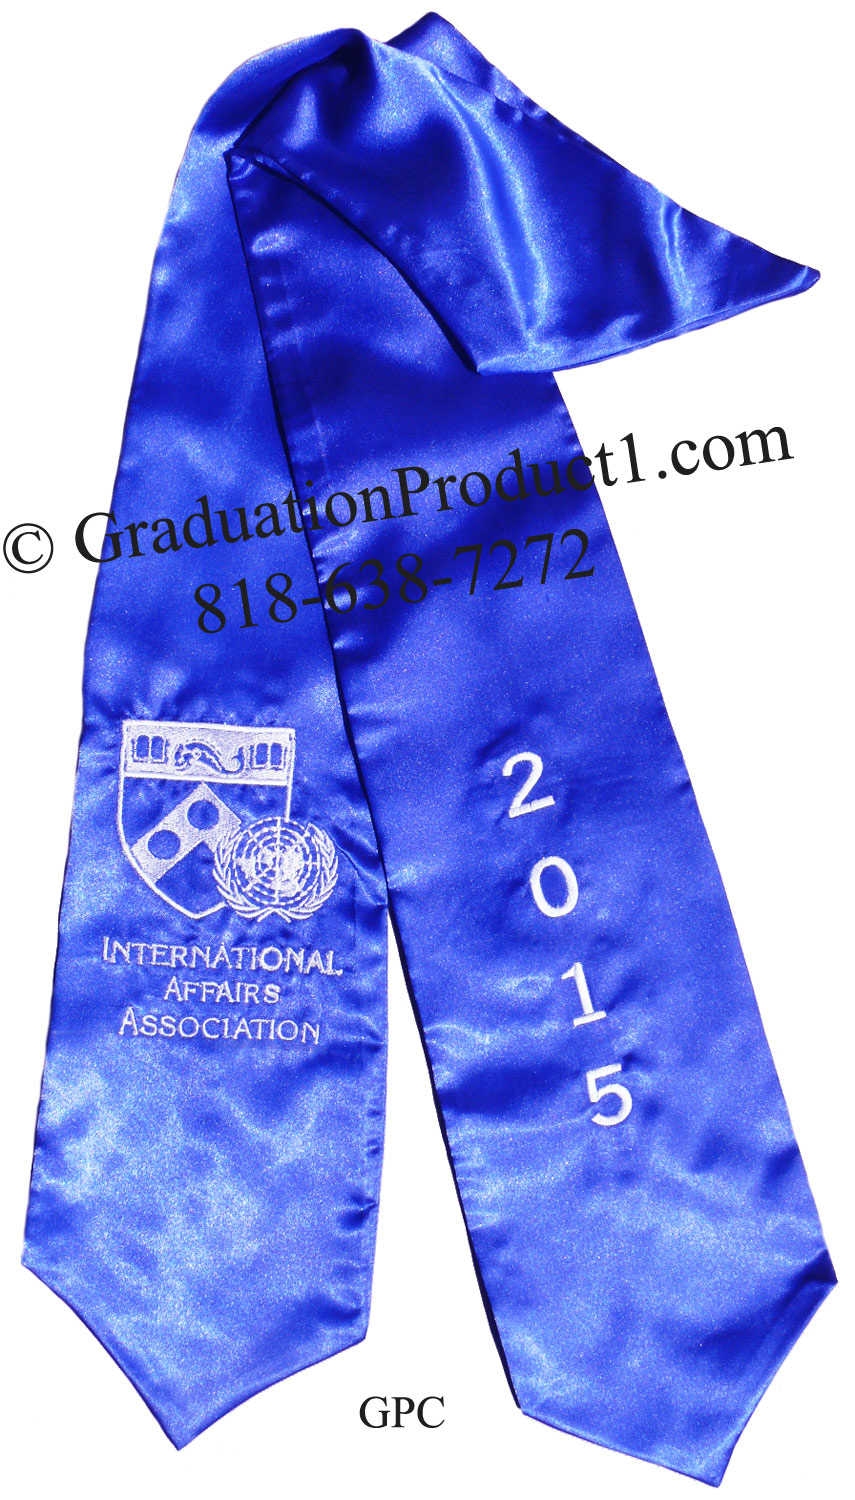 International Affairs Association 2015 Royalblue Graduation Stole